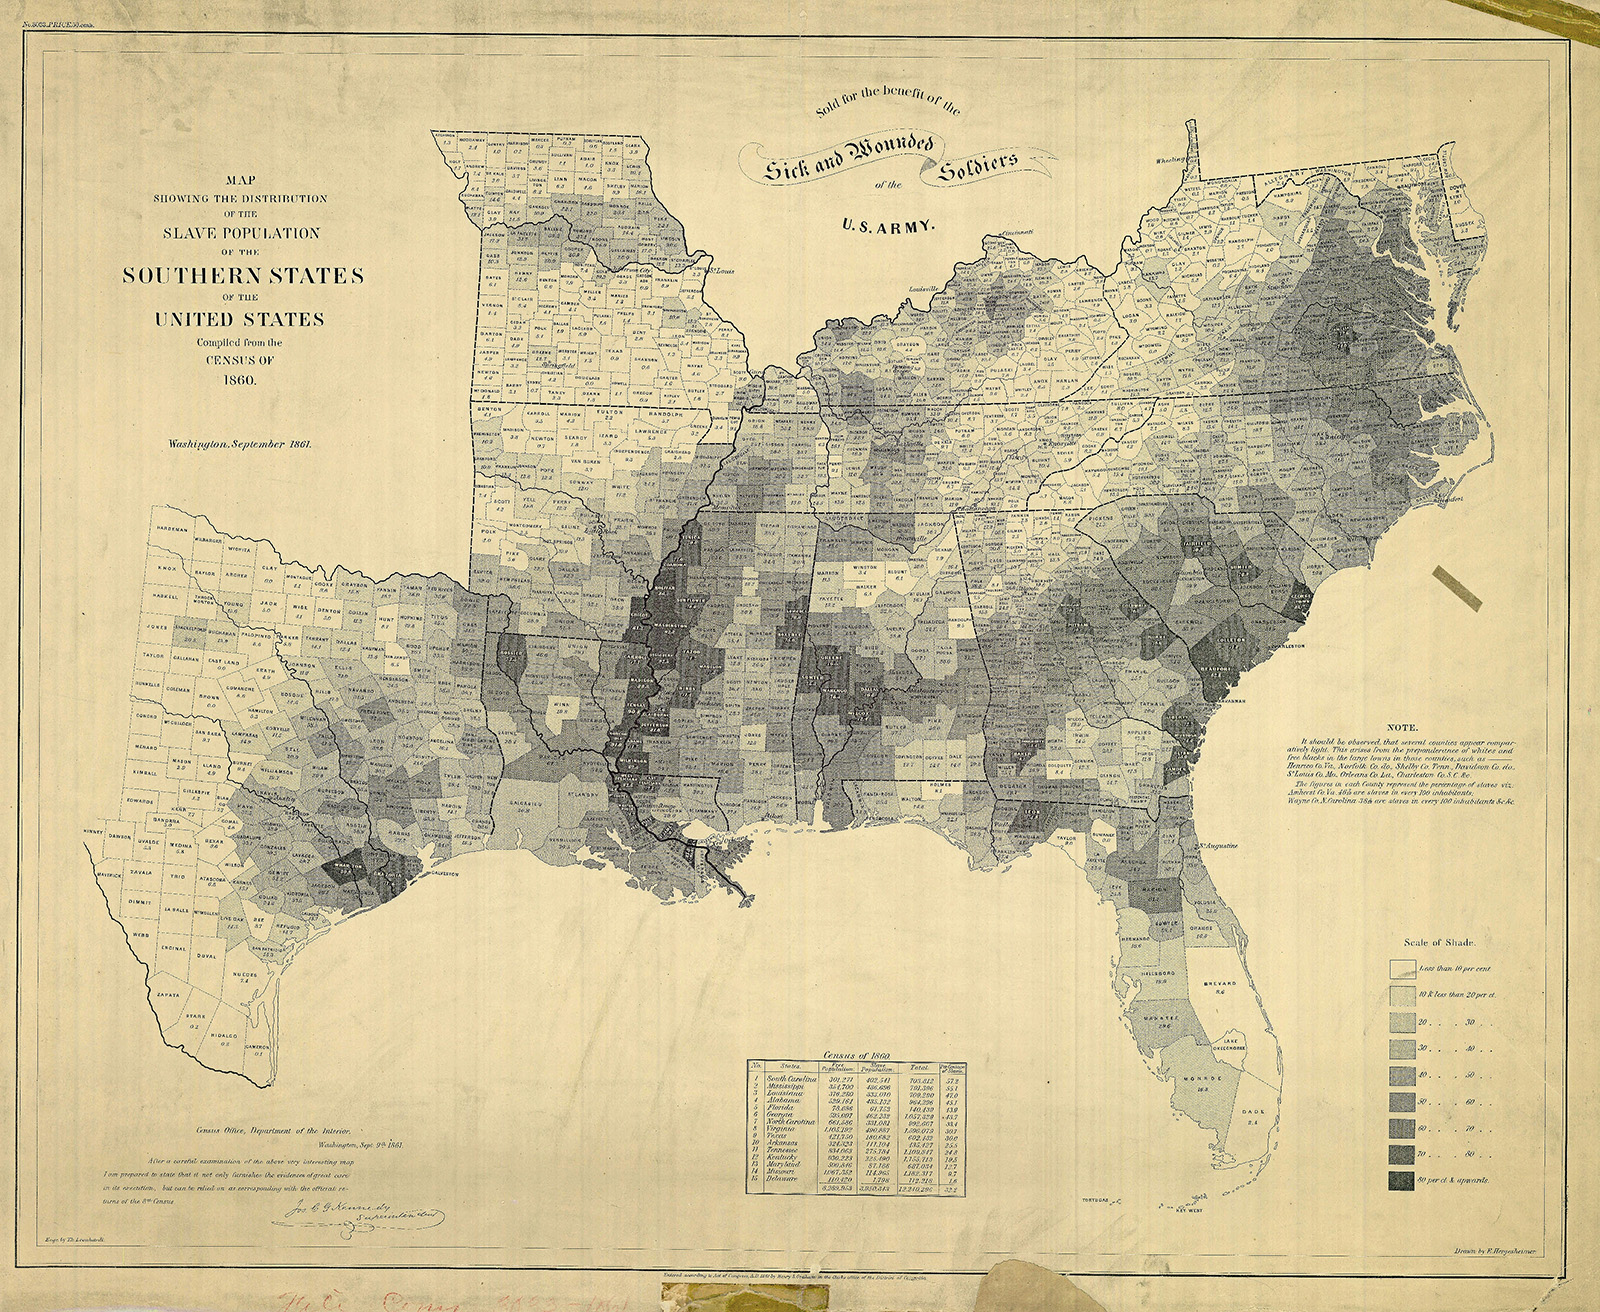 map of slave population